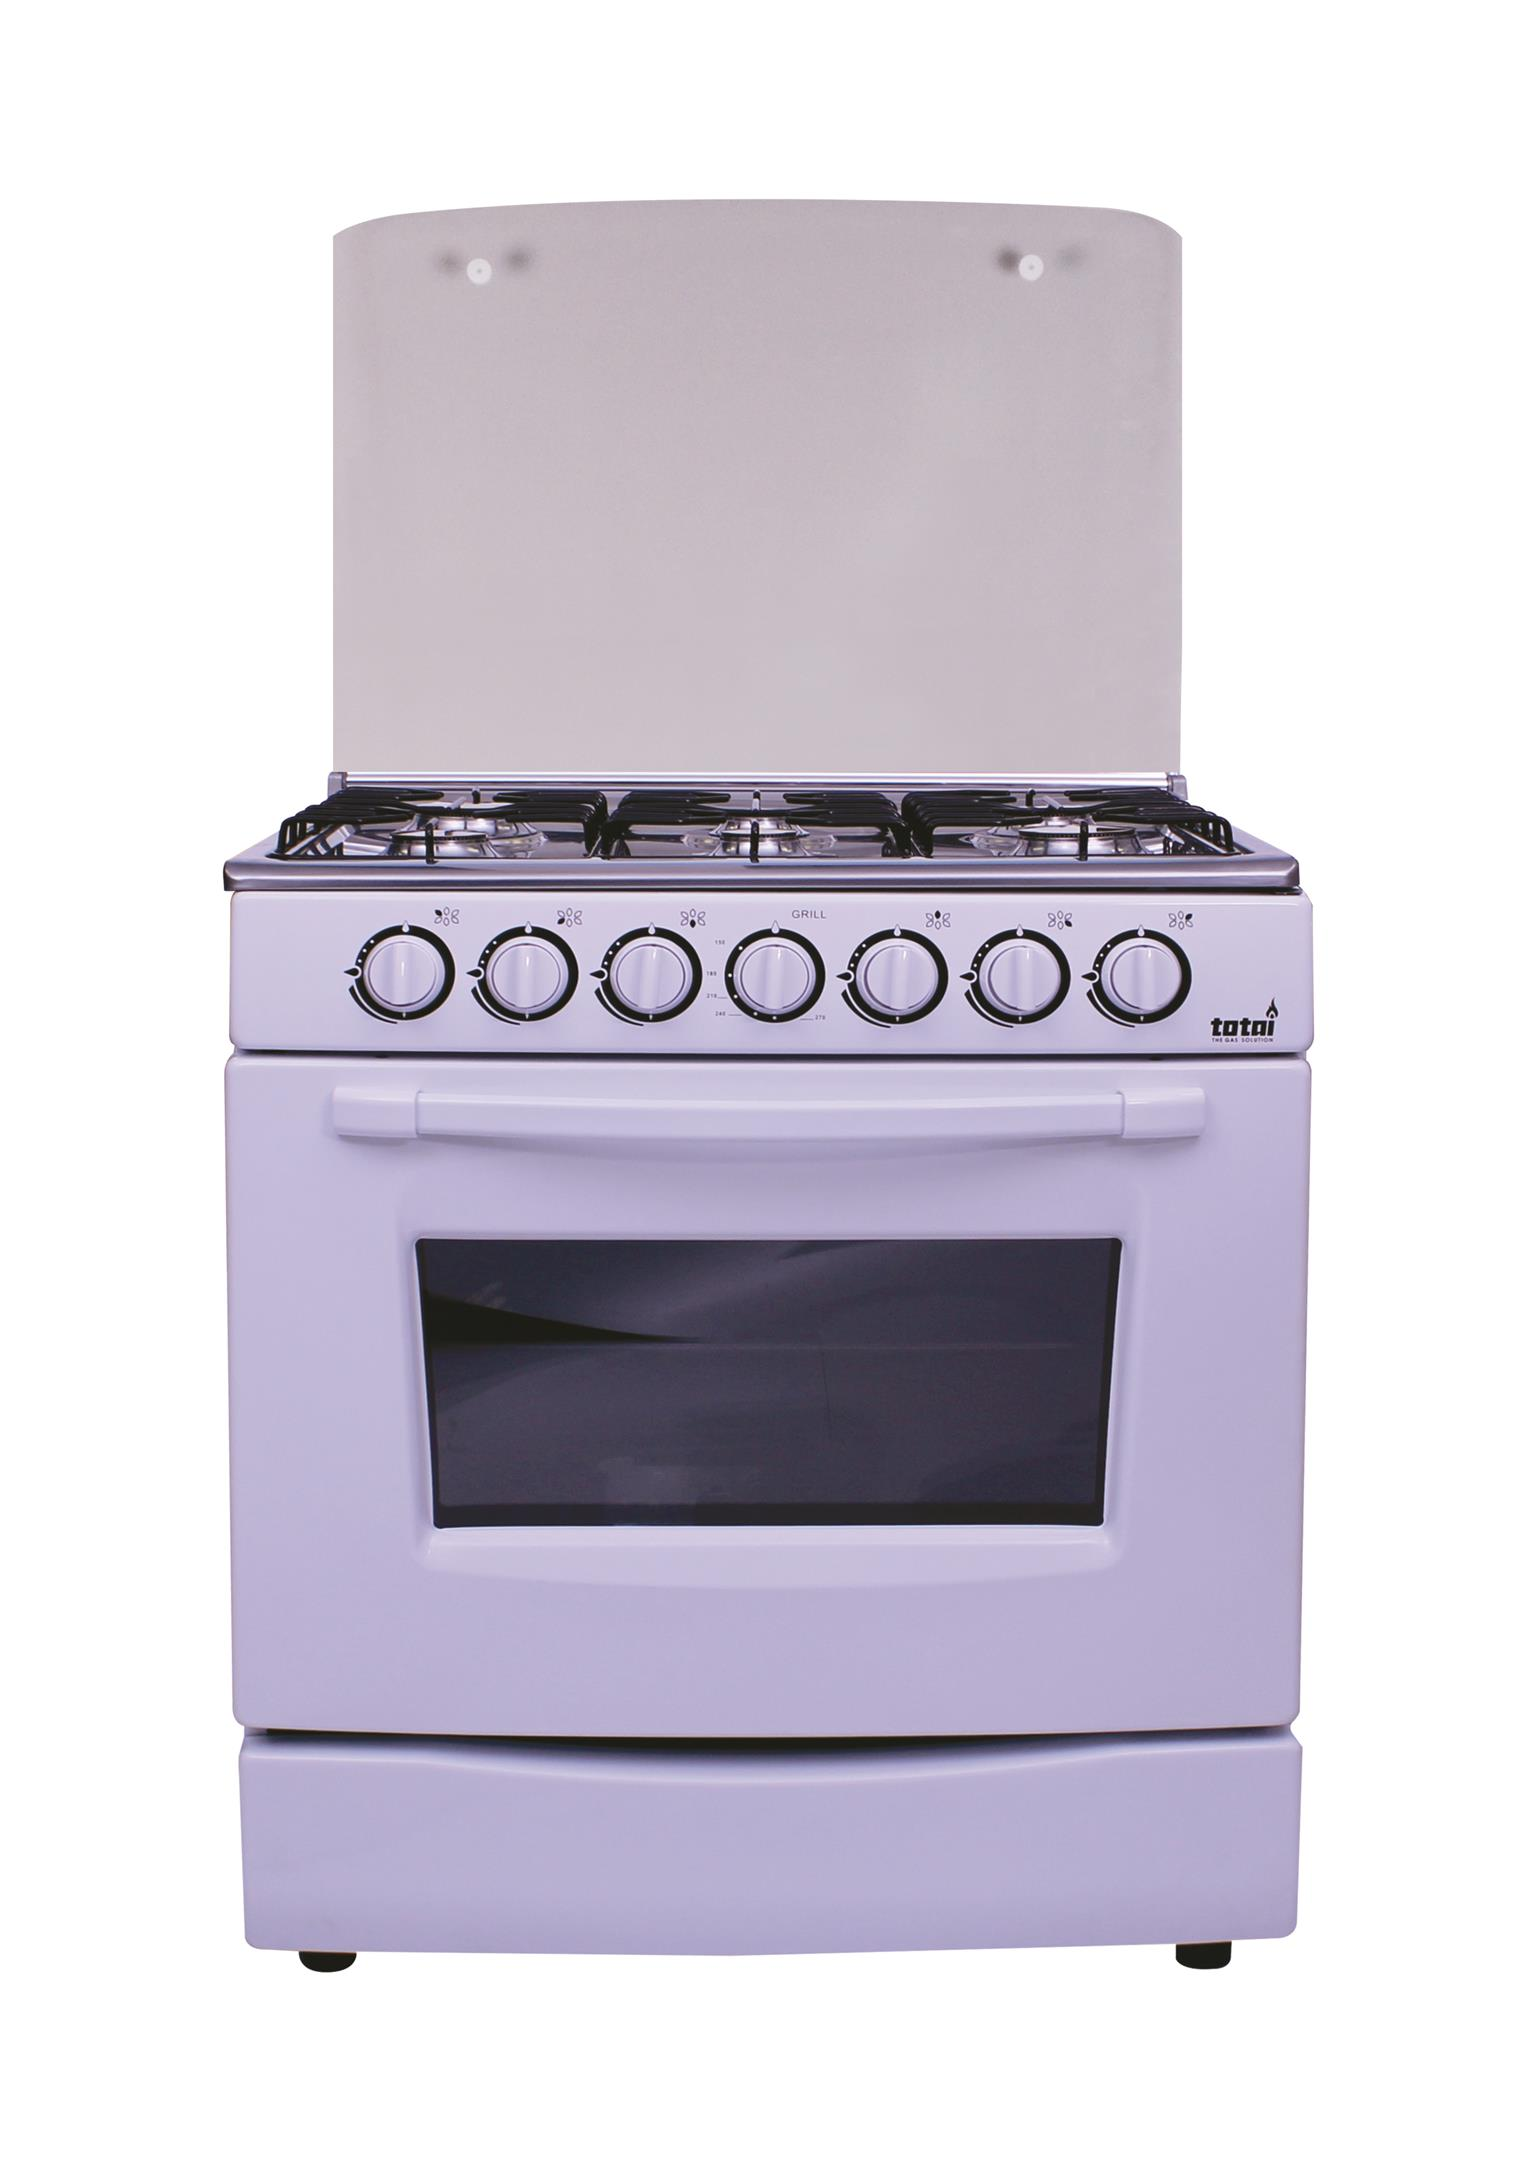 GAS STOVE WITH OVEN TOTAI